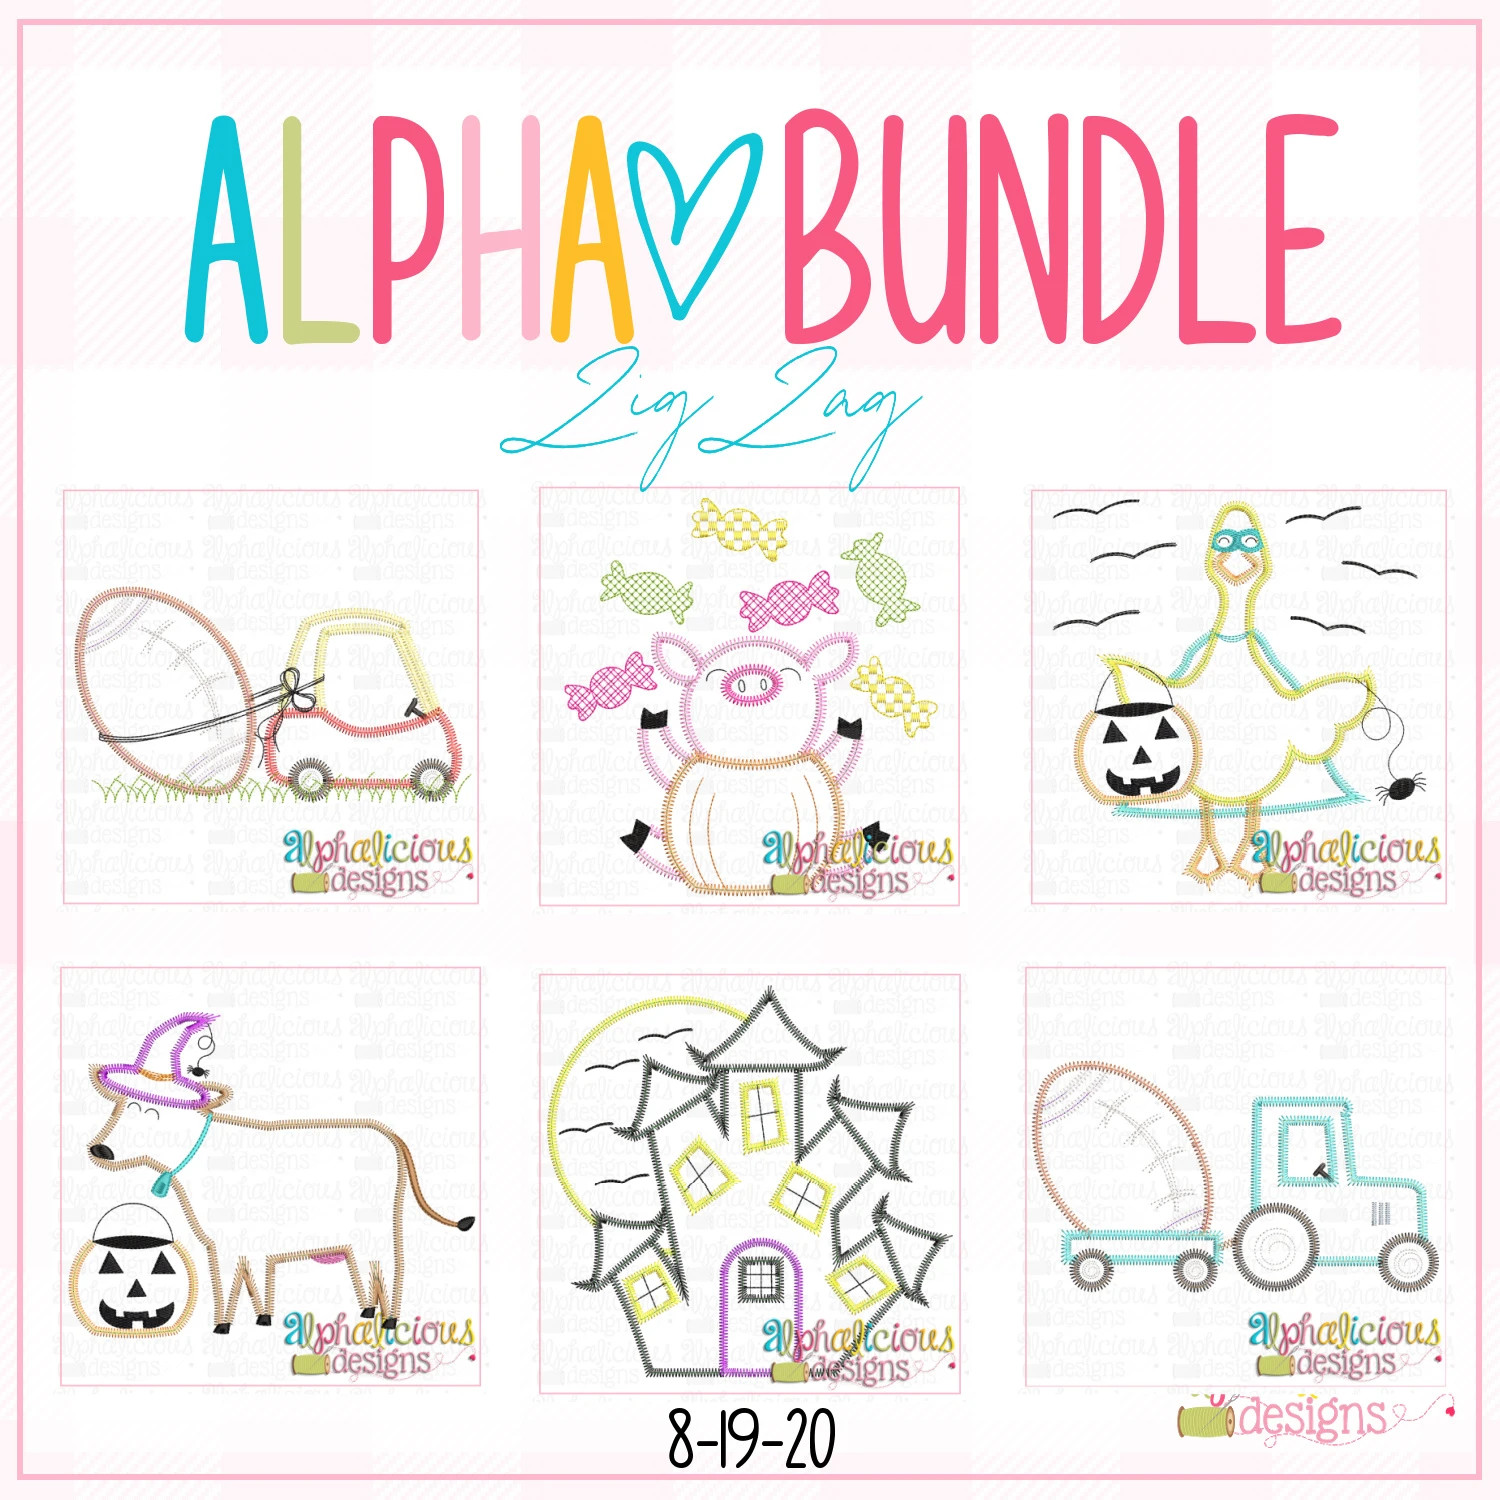 ALPHA BUNDLE-8/19/20 Release-ZigZag Stitch